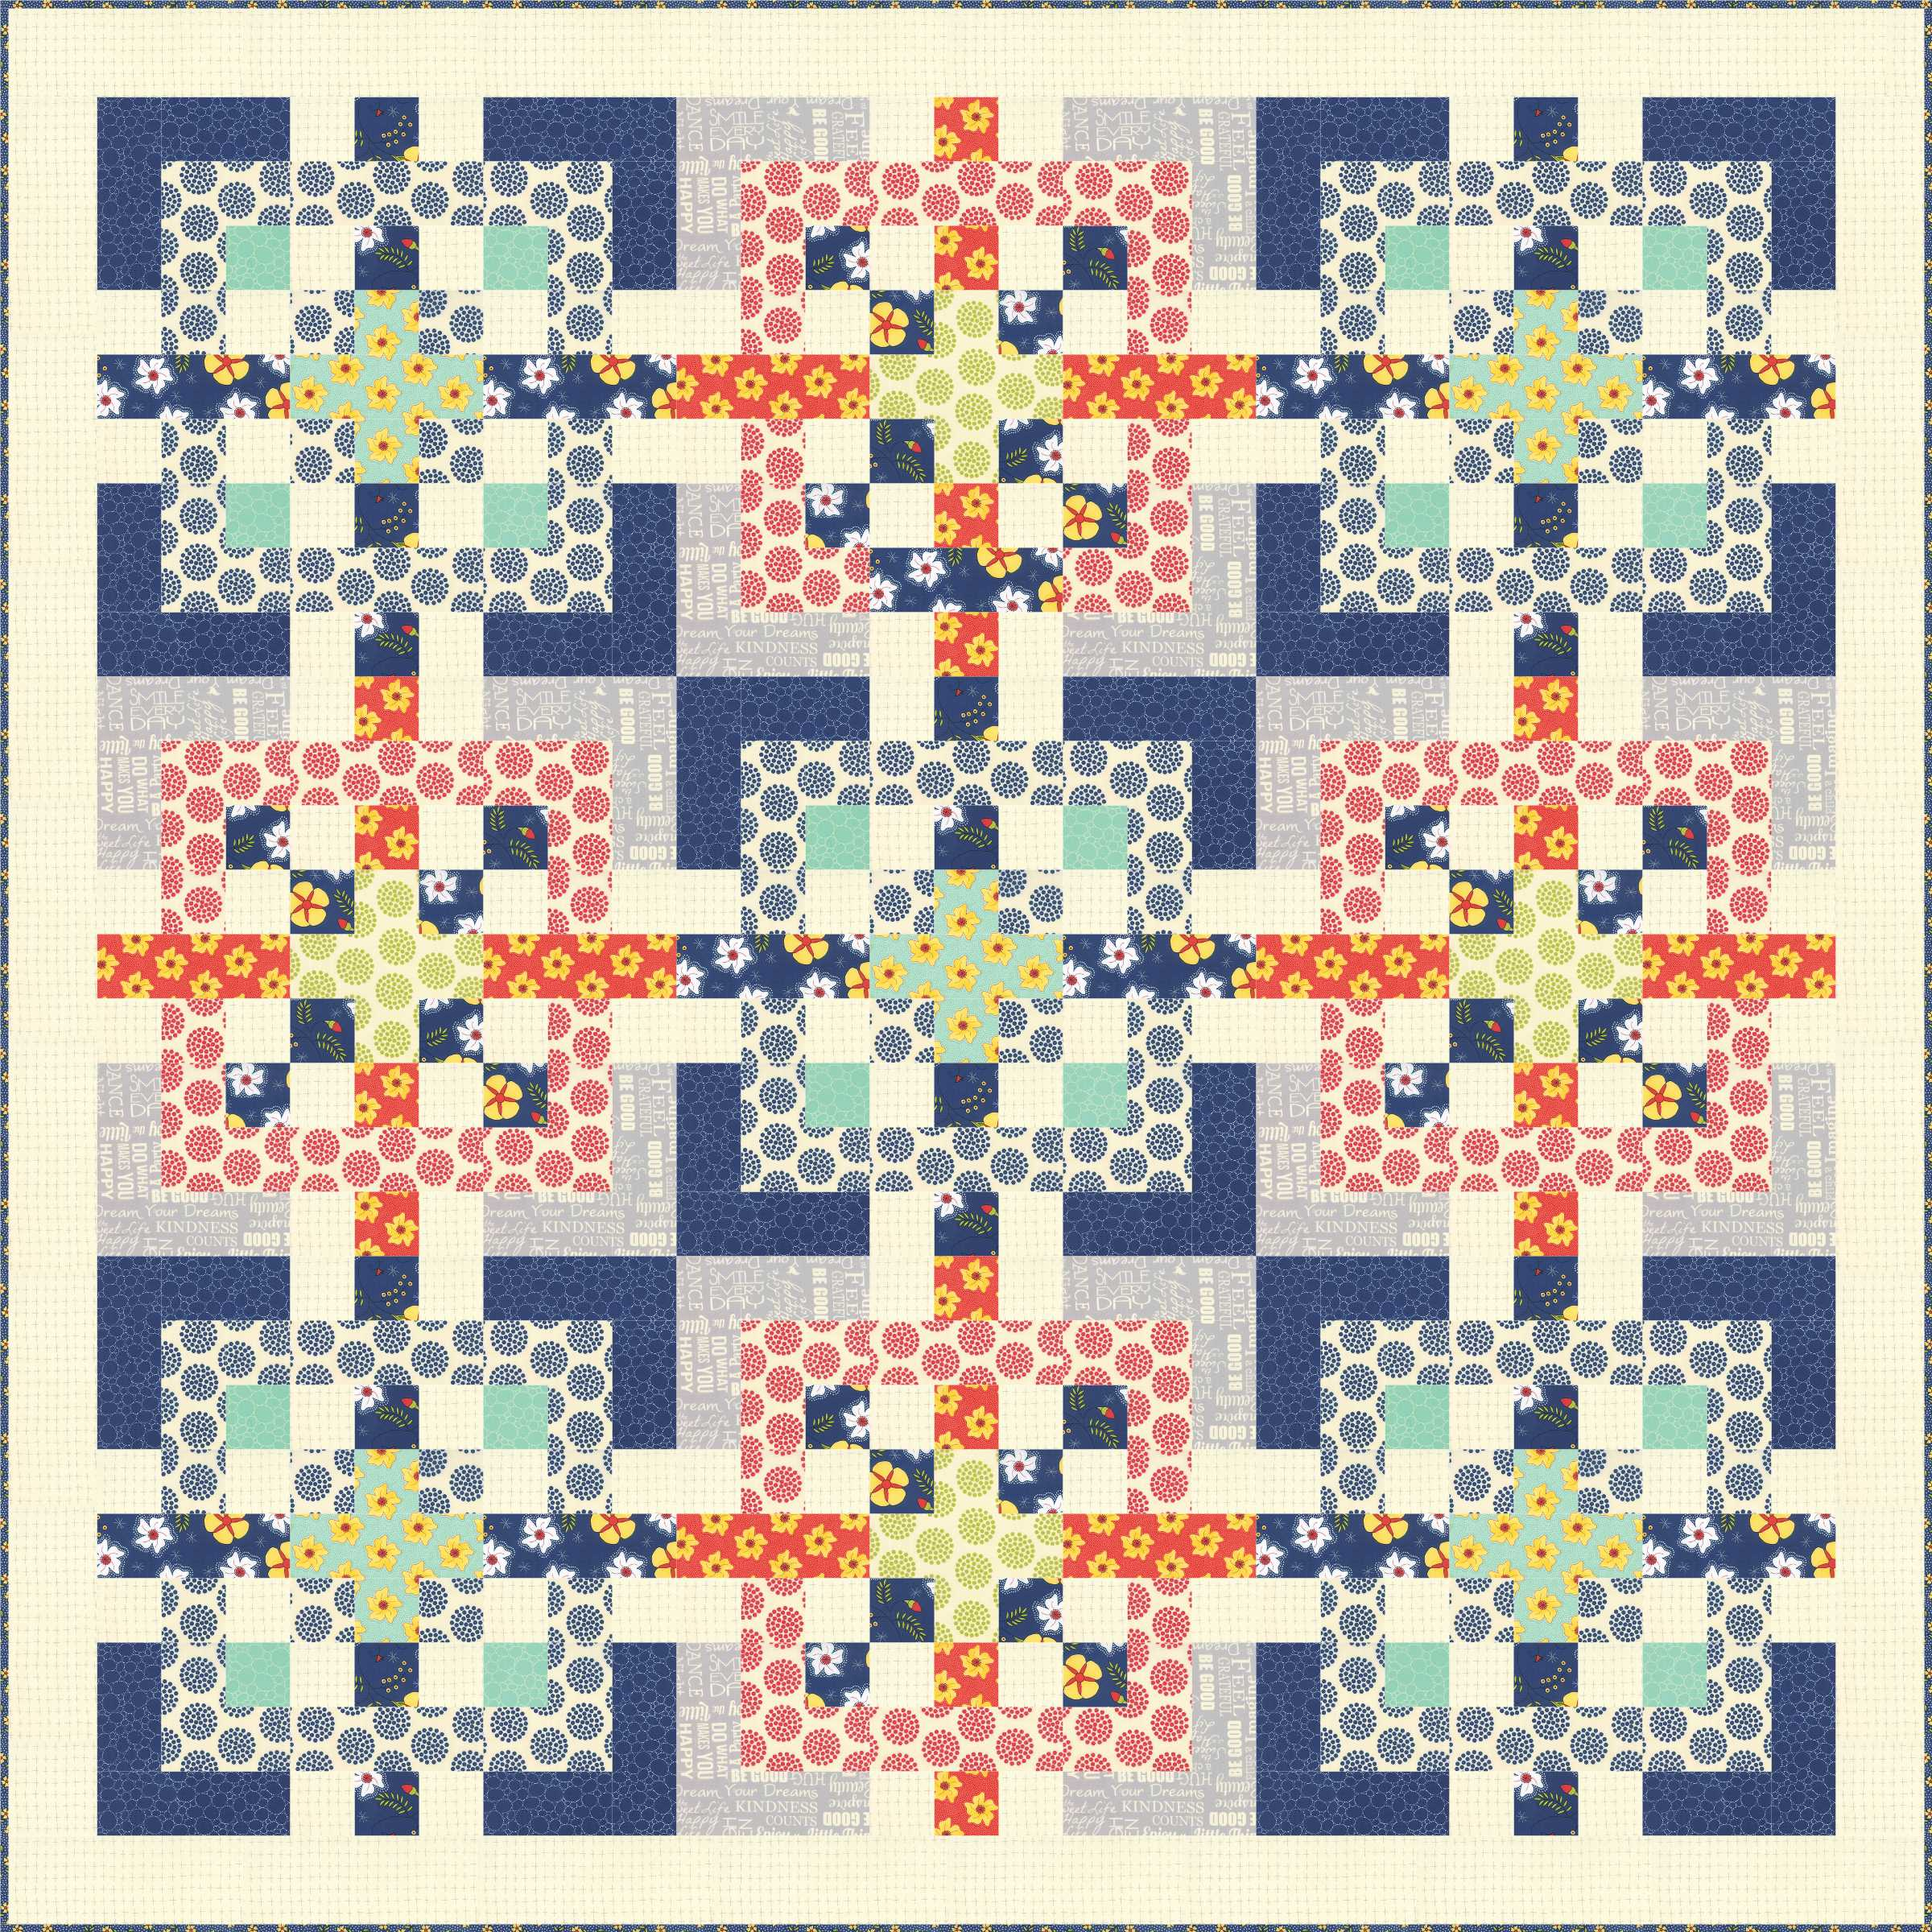 Cover Quilt Alert: All In Knots in FONS & PORTER'S EASY QUILTS ... : fons and porter quilt patterns - Adamdwight.com